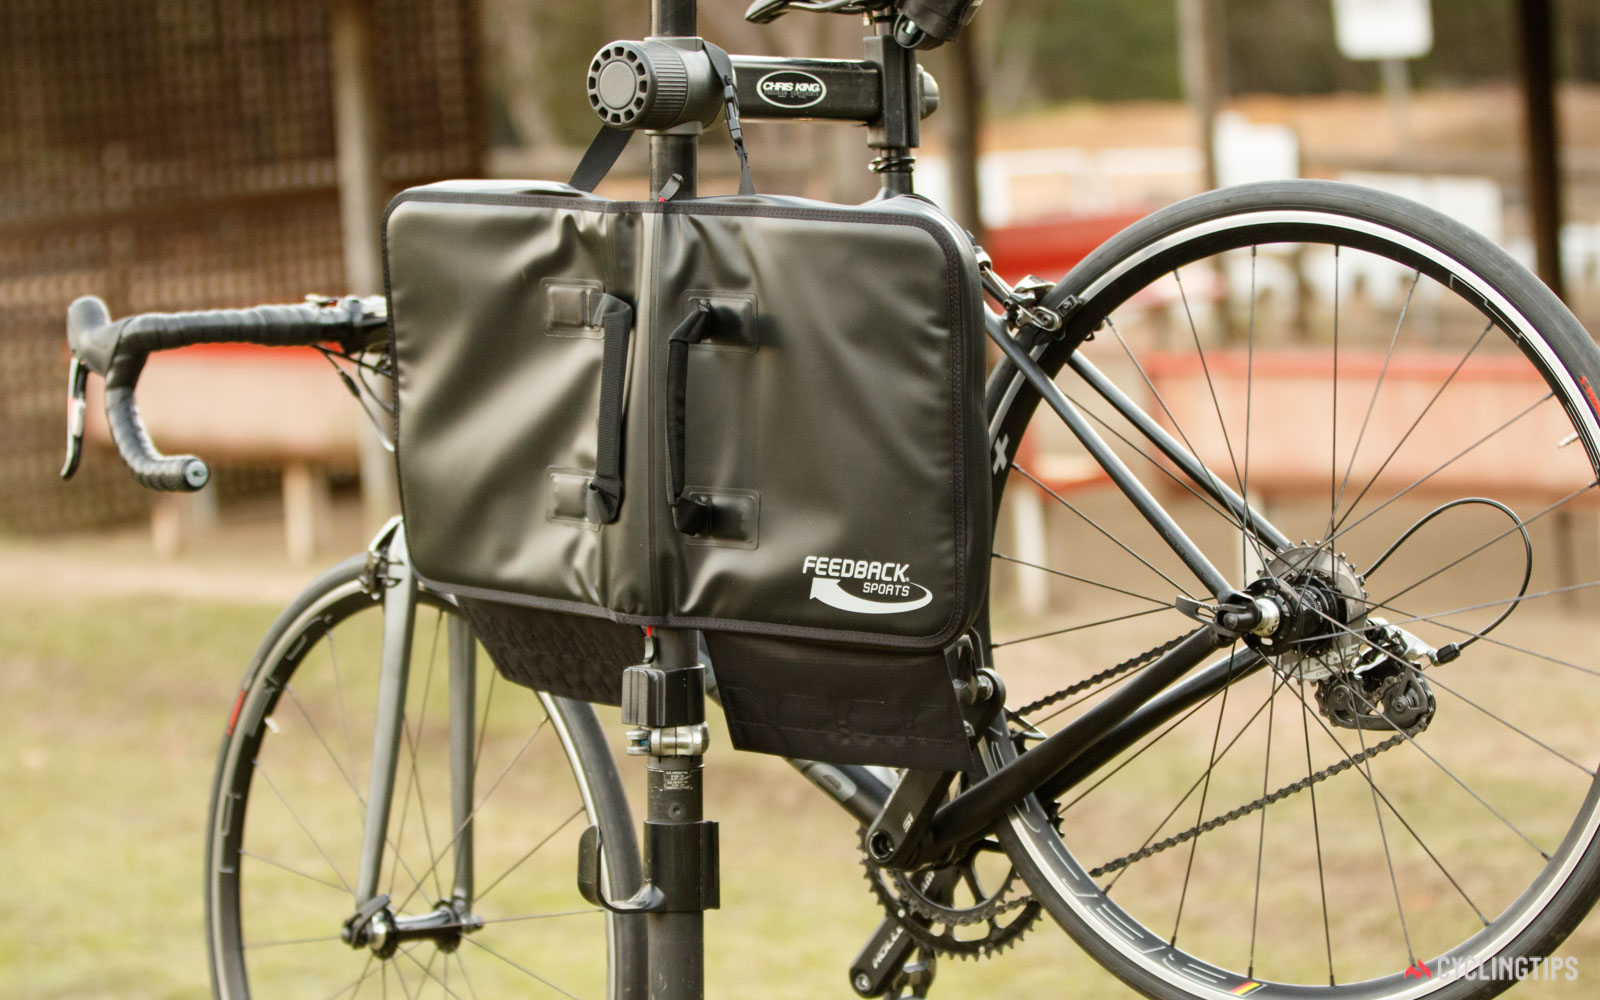 Feedback Sports Team Edition tool kit on a workstand